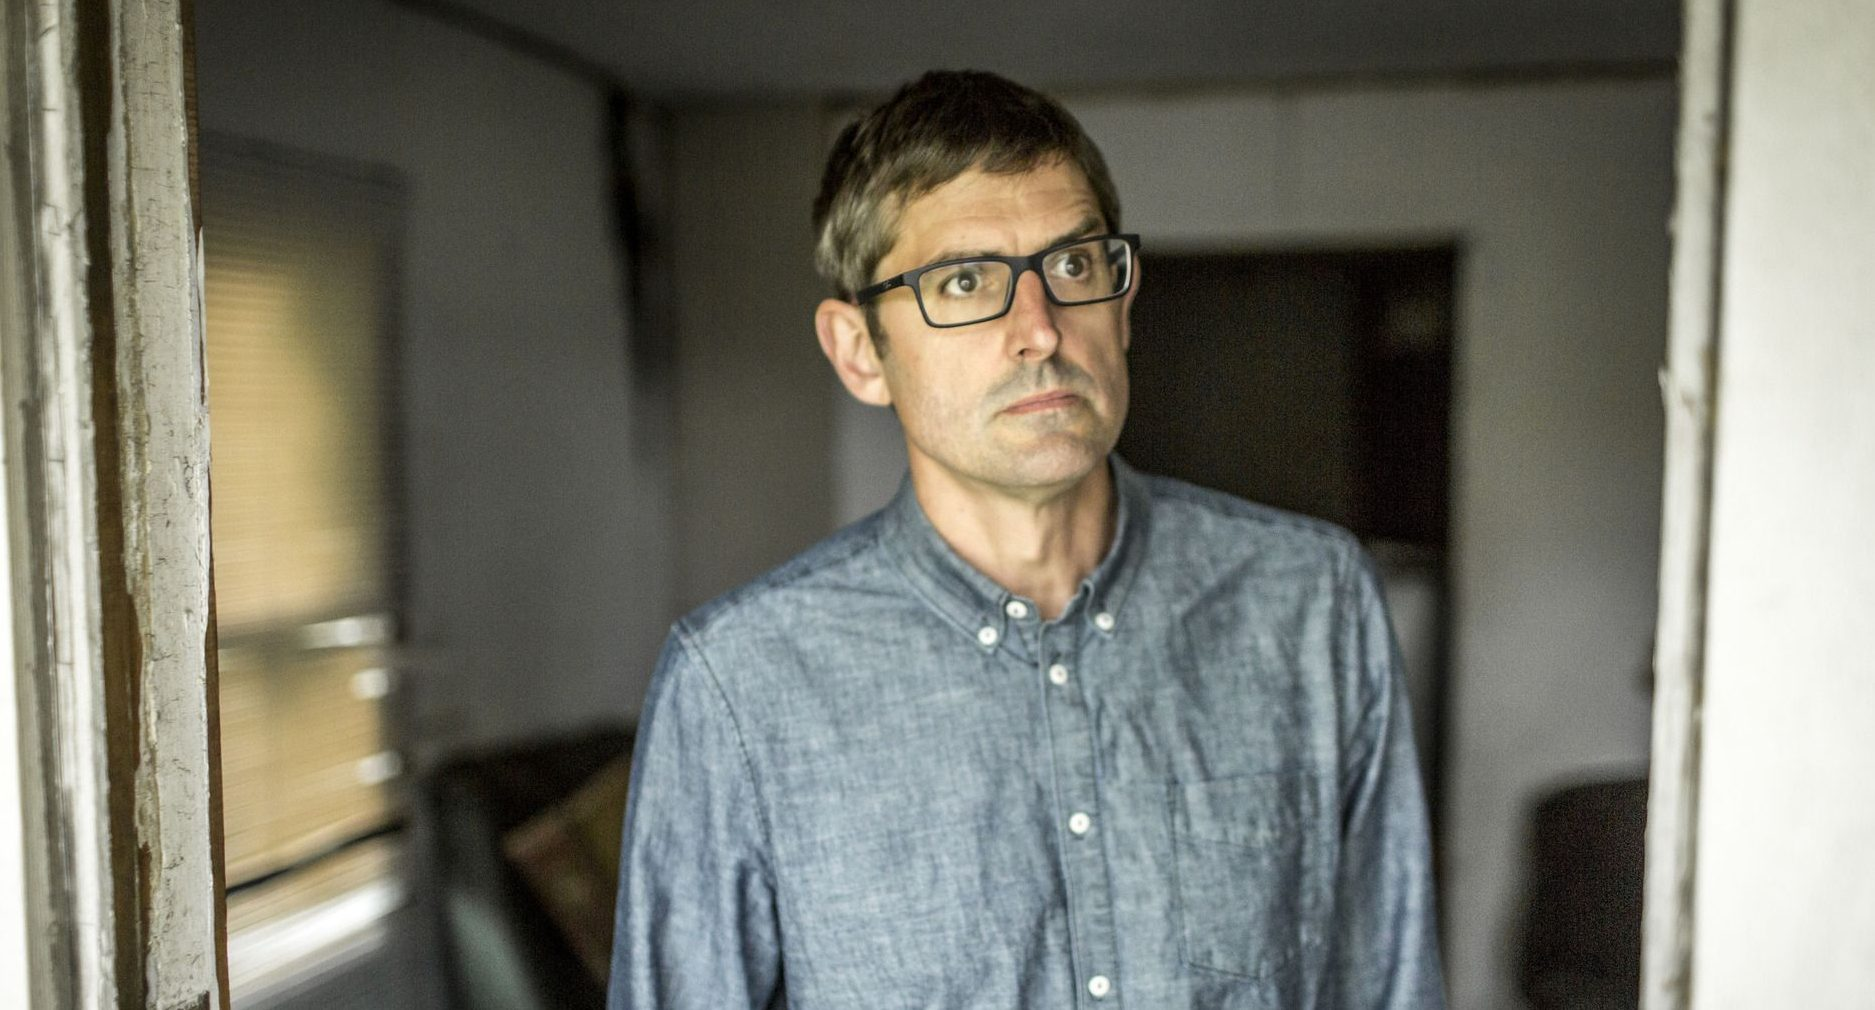 Louis Theroux is returning to BBC with new documentary about sex and death